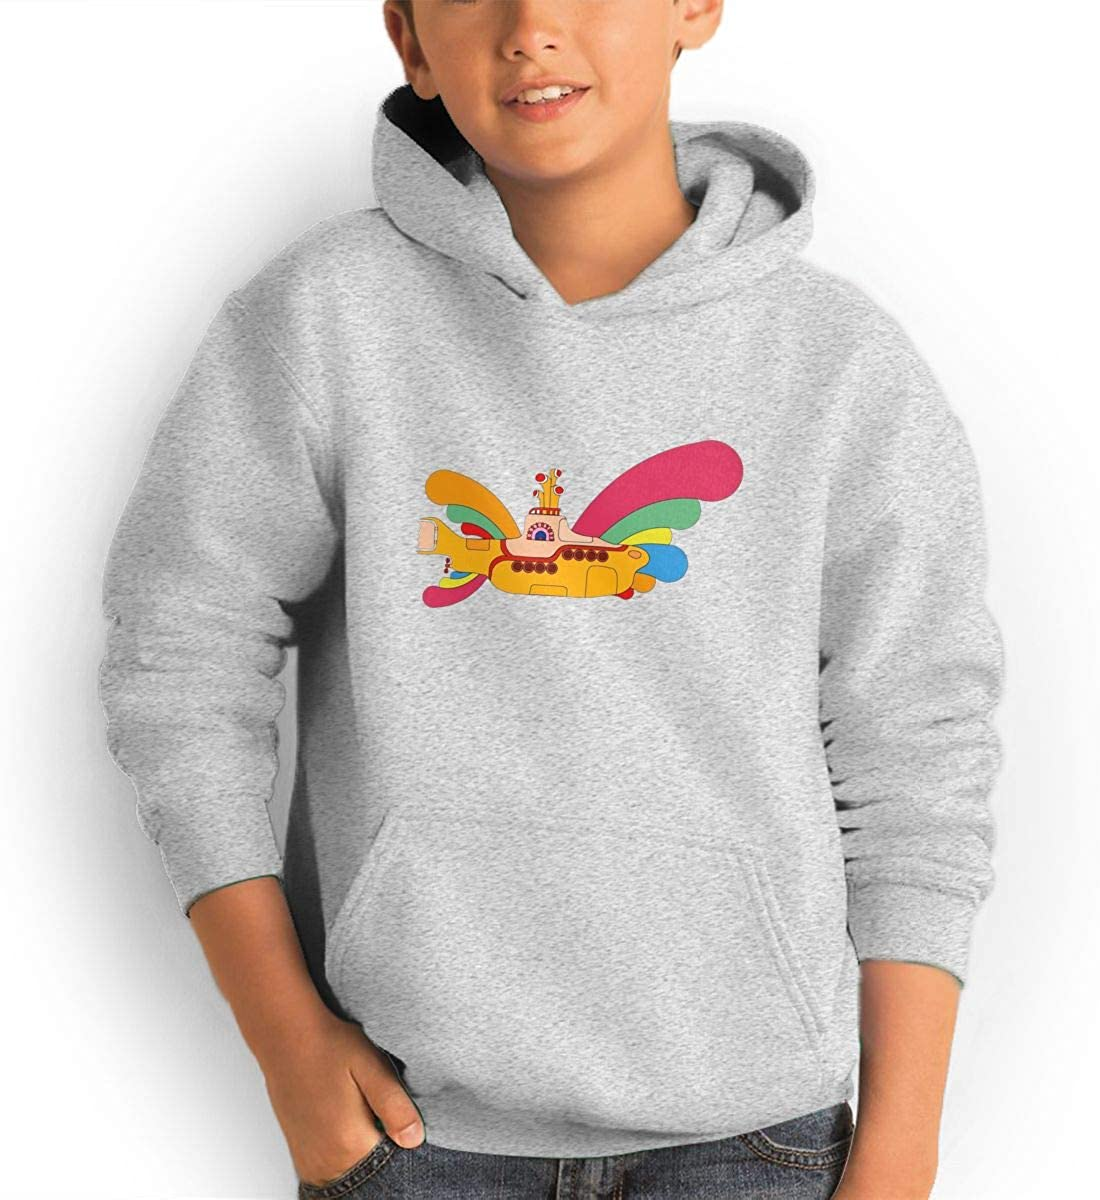 Red Coffee Teen Fashion Hoodie Hooded Sweatshirt Pocket Youth Boys Girls Sweaters,The Beatles Yellow Submarine